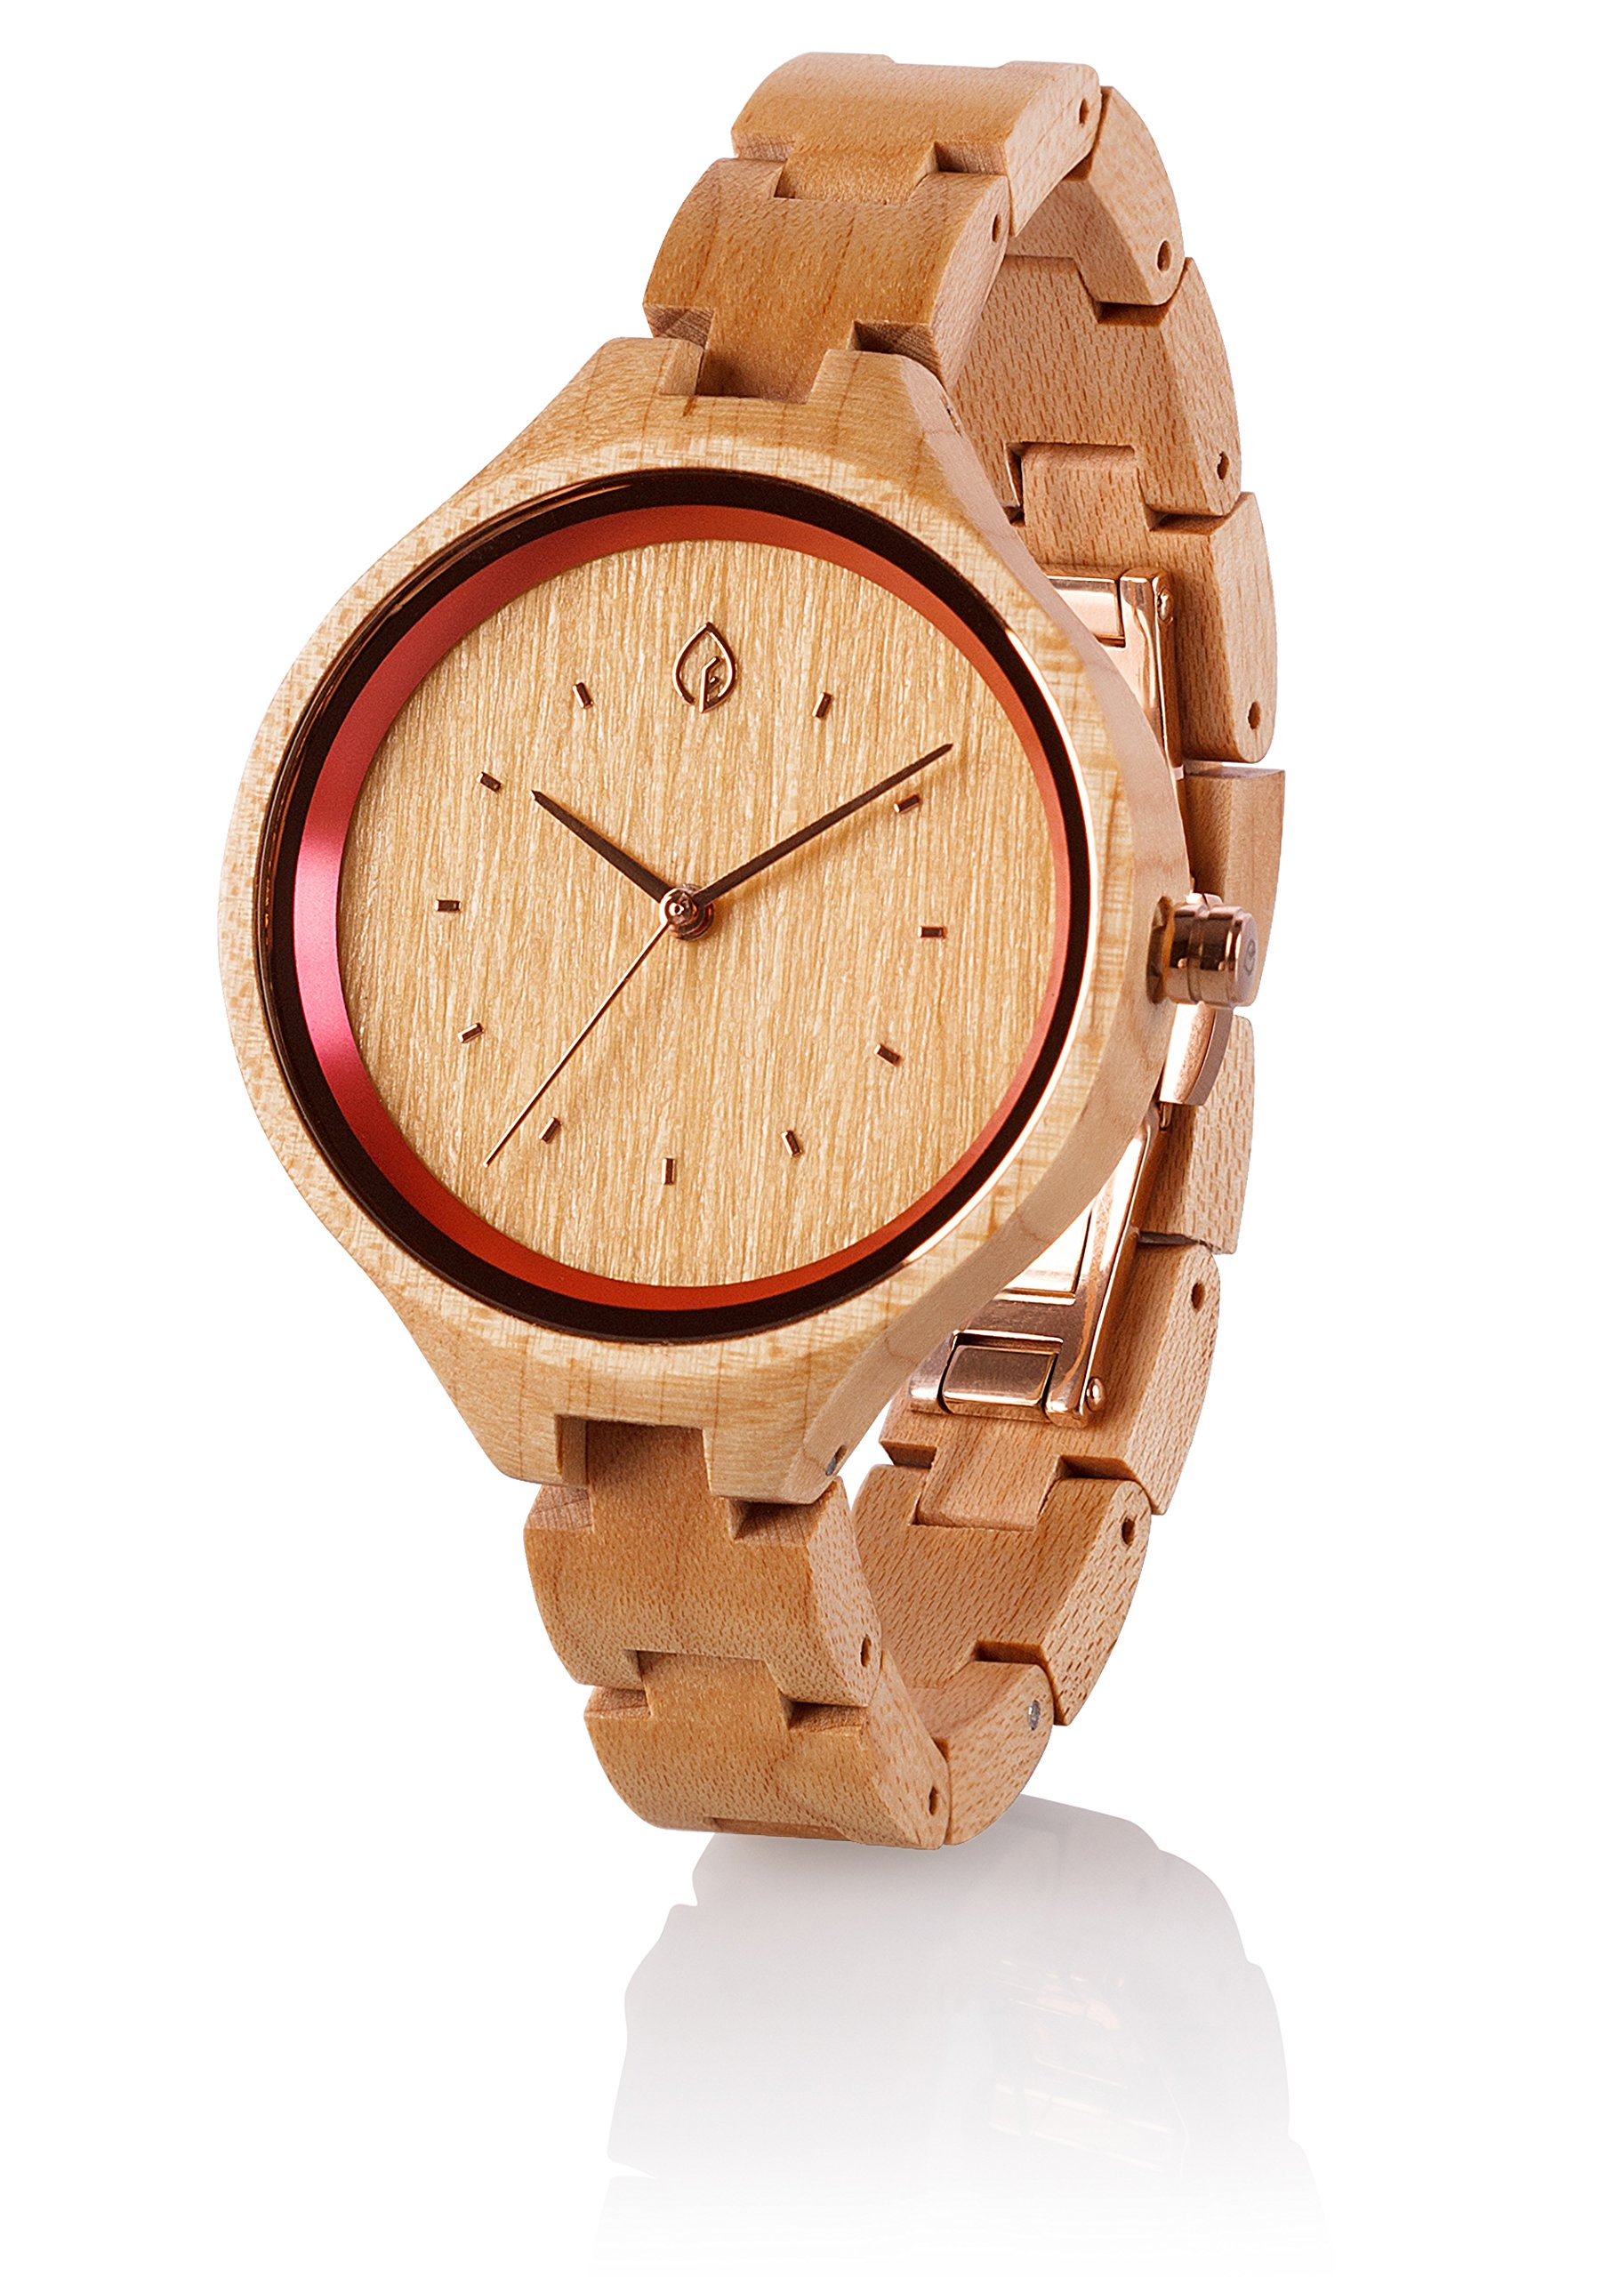 Women Wooden Watch Ladies Wood Watch For Women Women's Wrist Watch Female Wood Watch Girlfriend Gift Mothers Day Gift Wedding Gift Anniversary Gift For Bridal Shower Gift maple wom